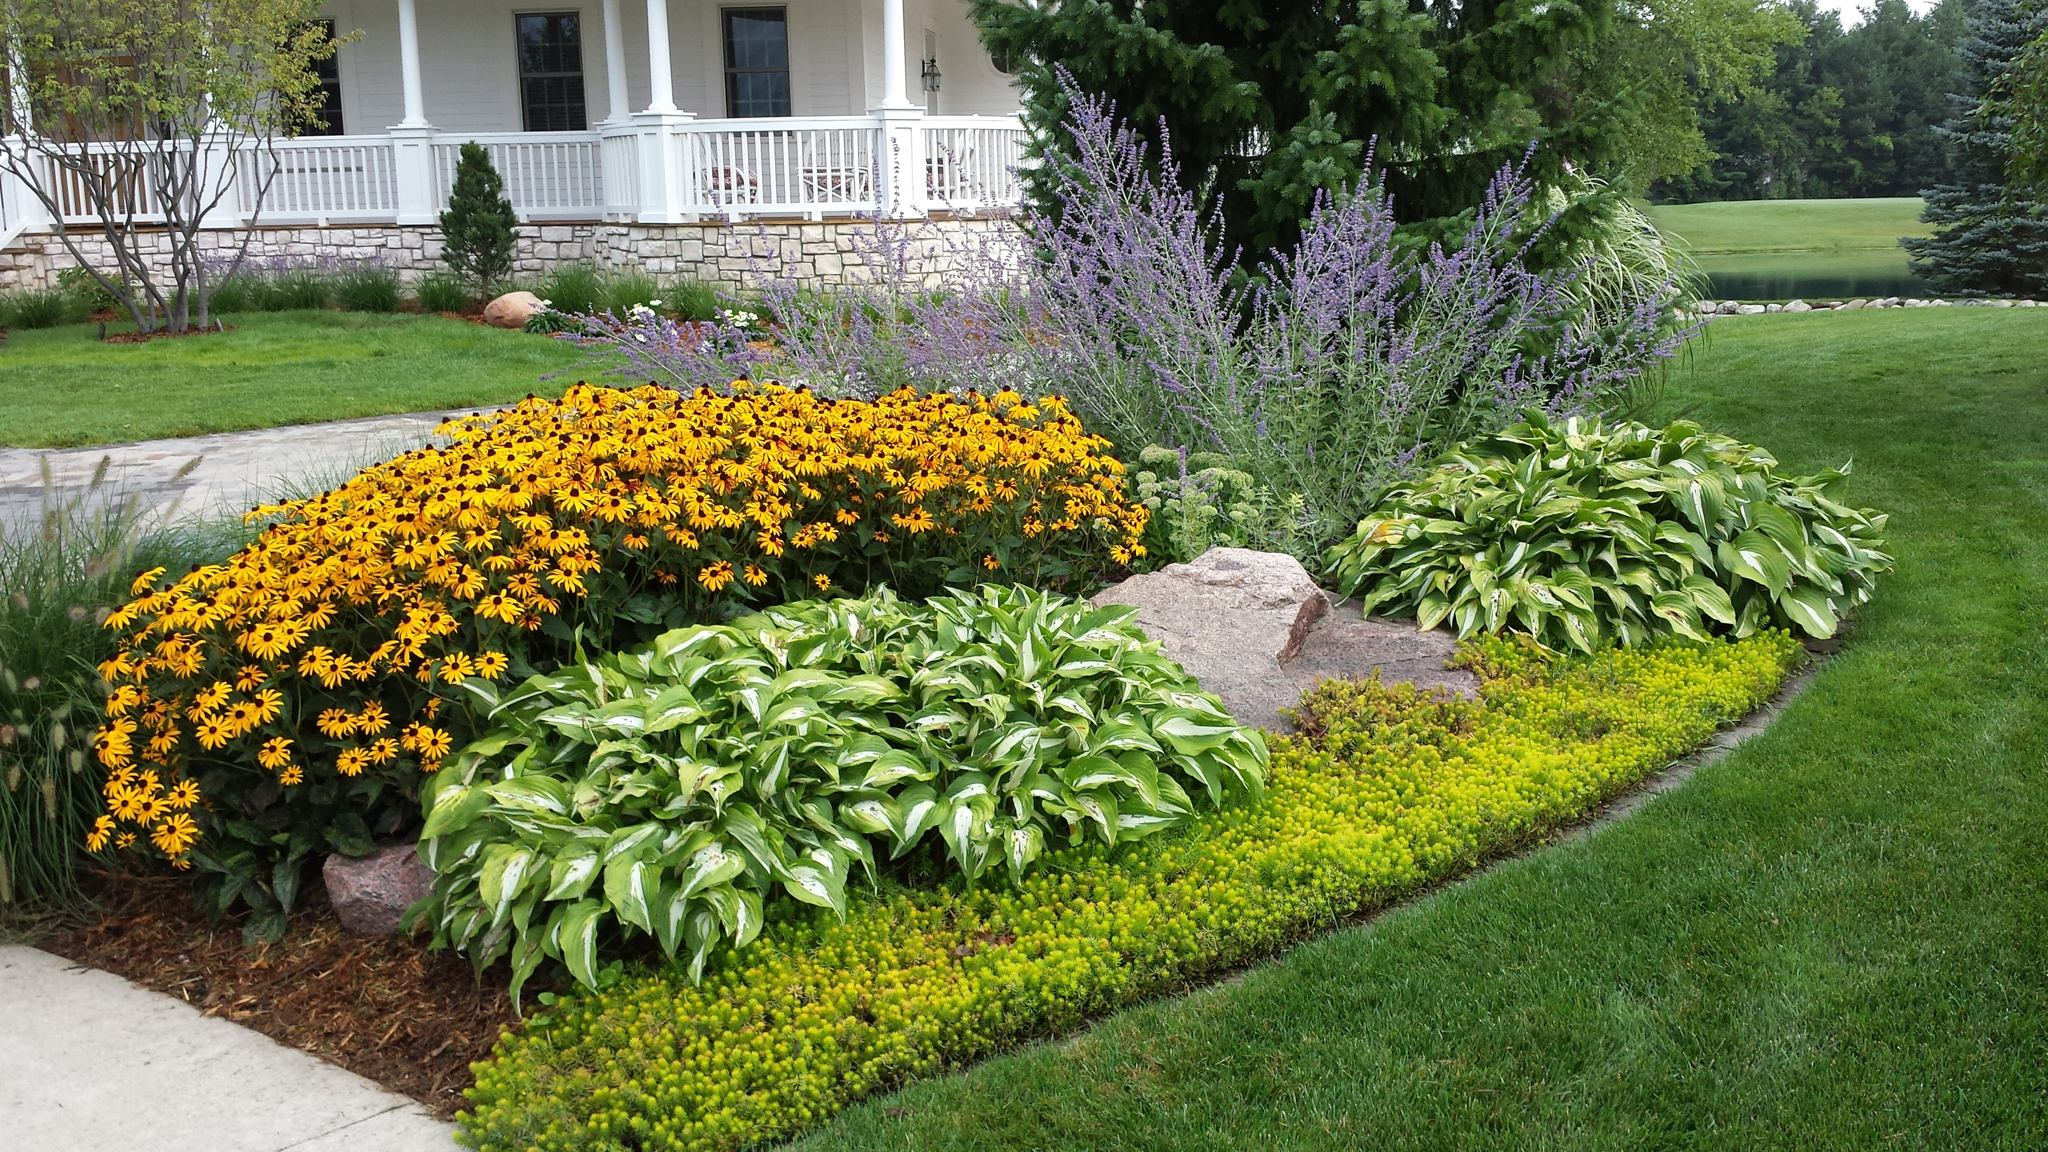 Medium And Small Projects Reder Landscaping Landscape Design